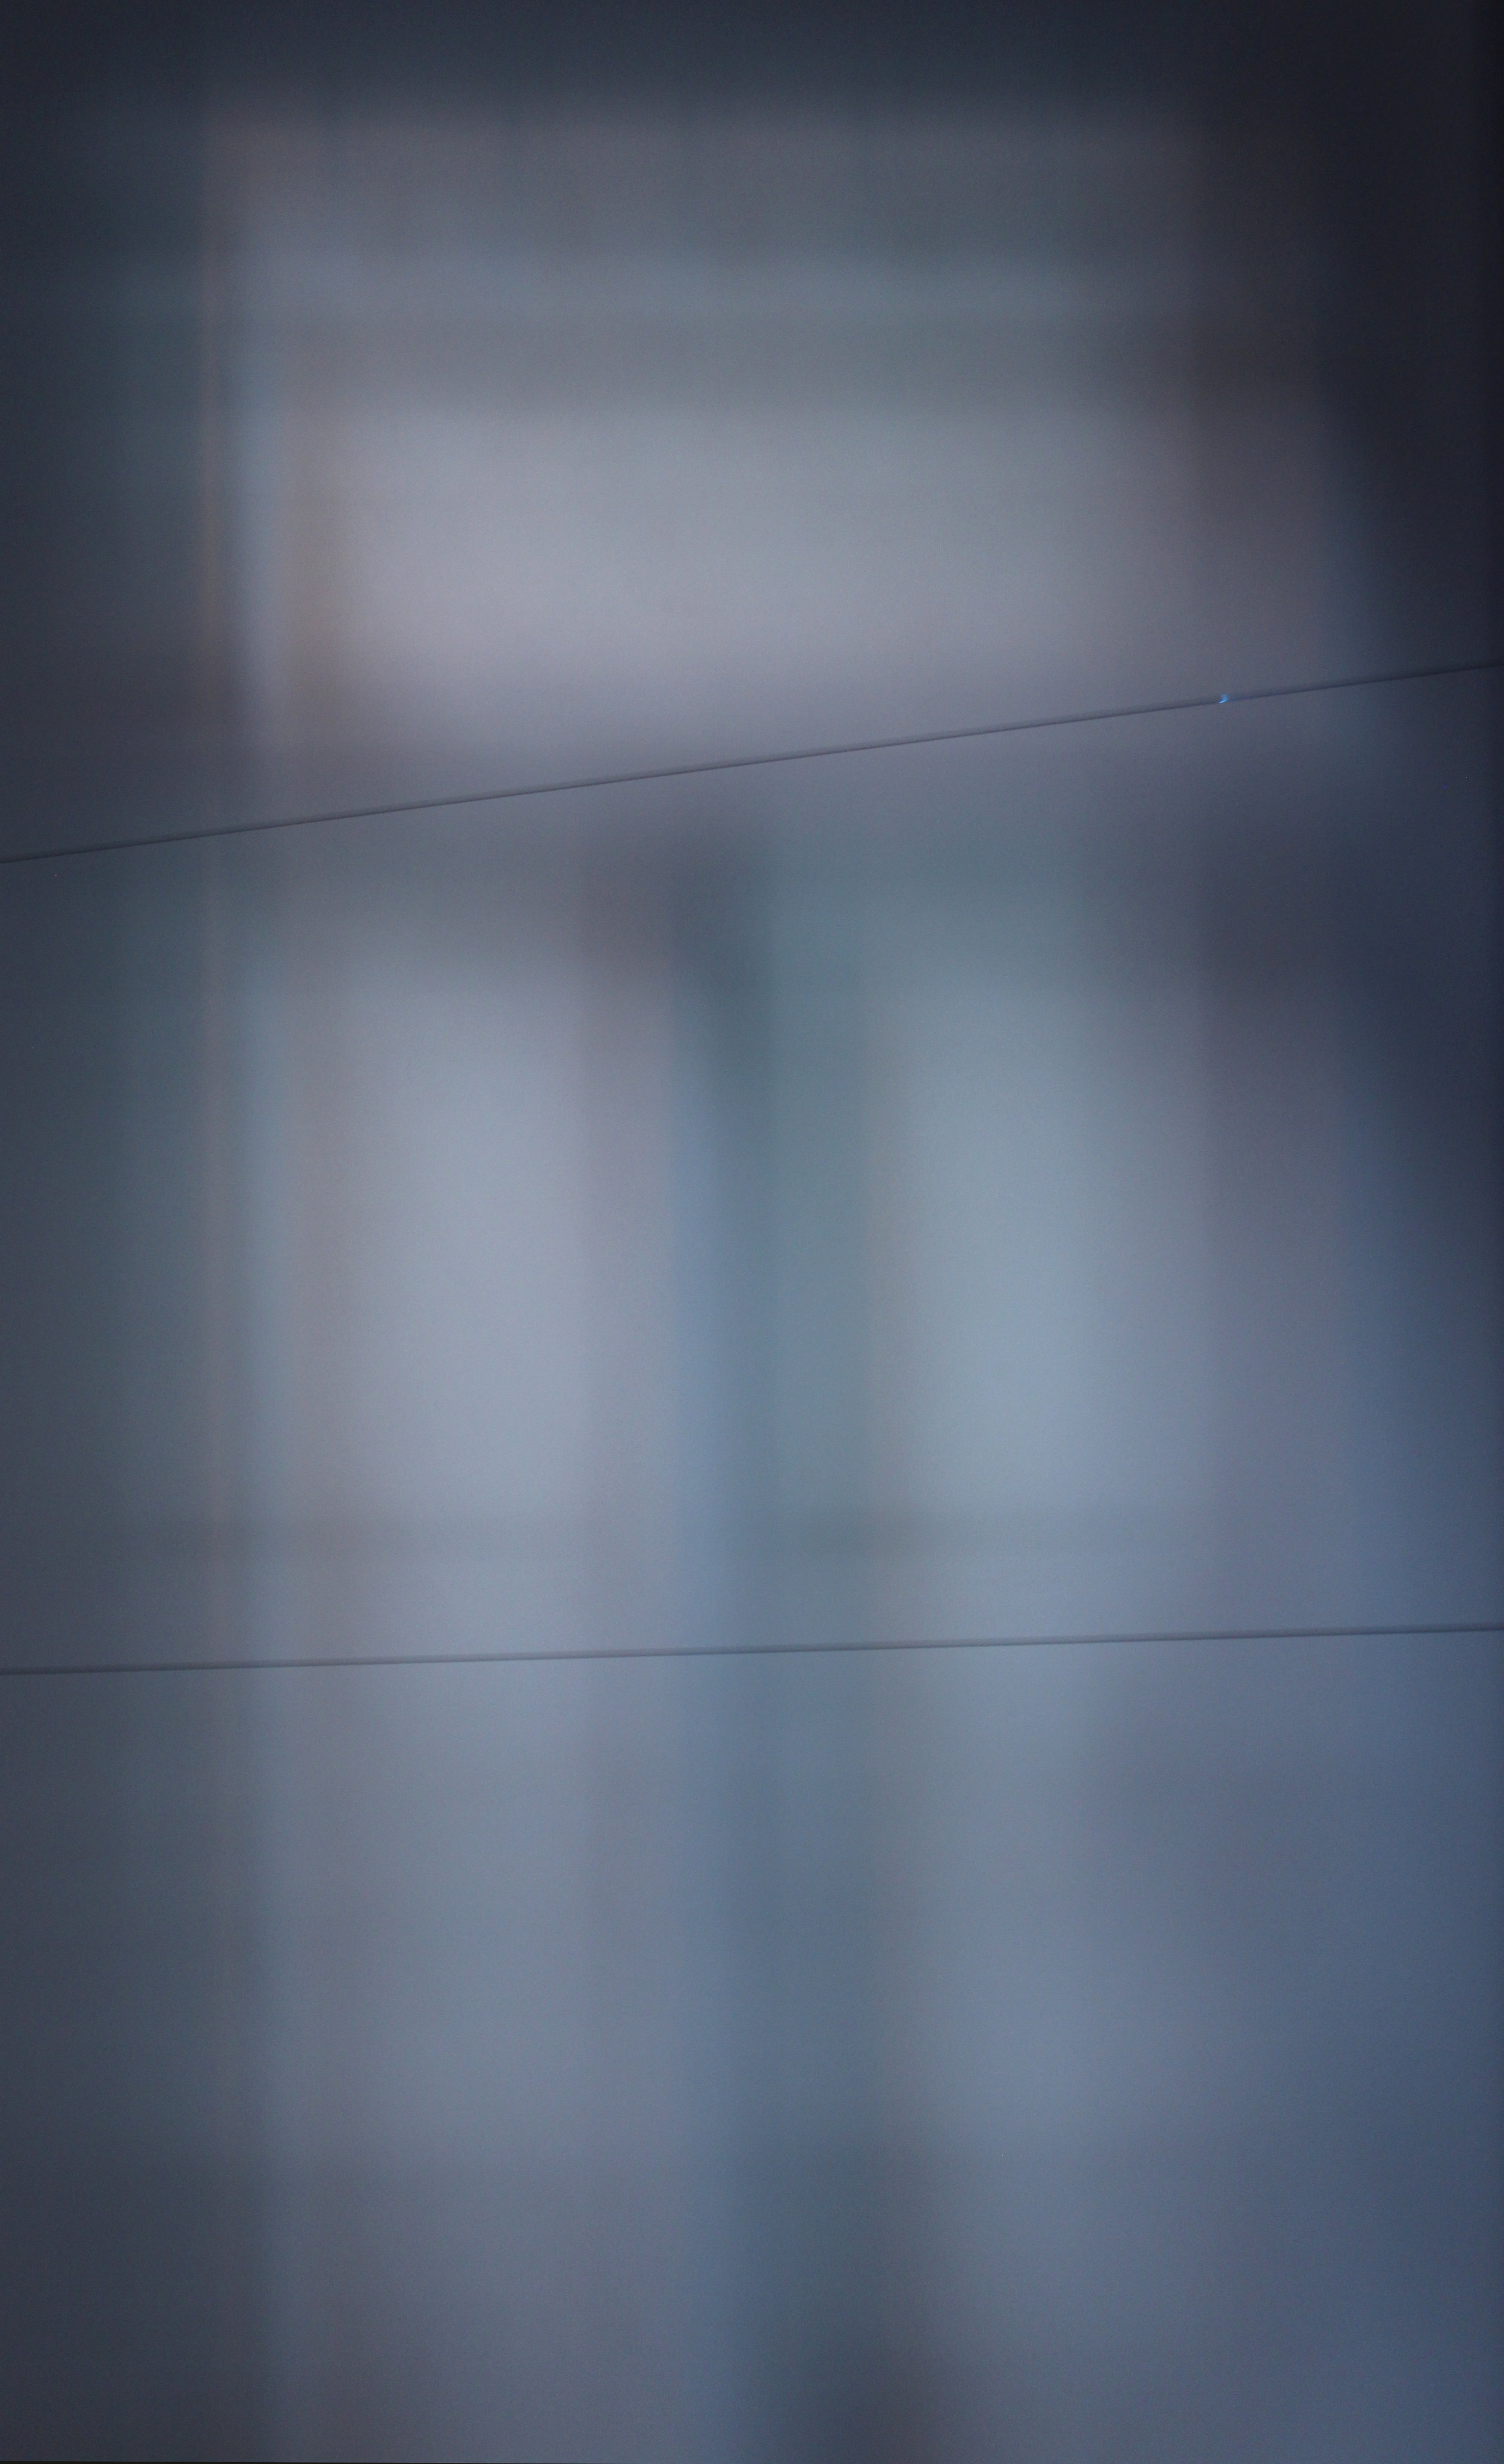 Detail of installation room 1. Piano strings across light diffusion paper. Afternoon light.